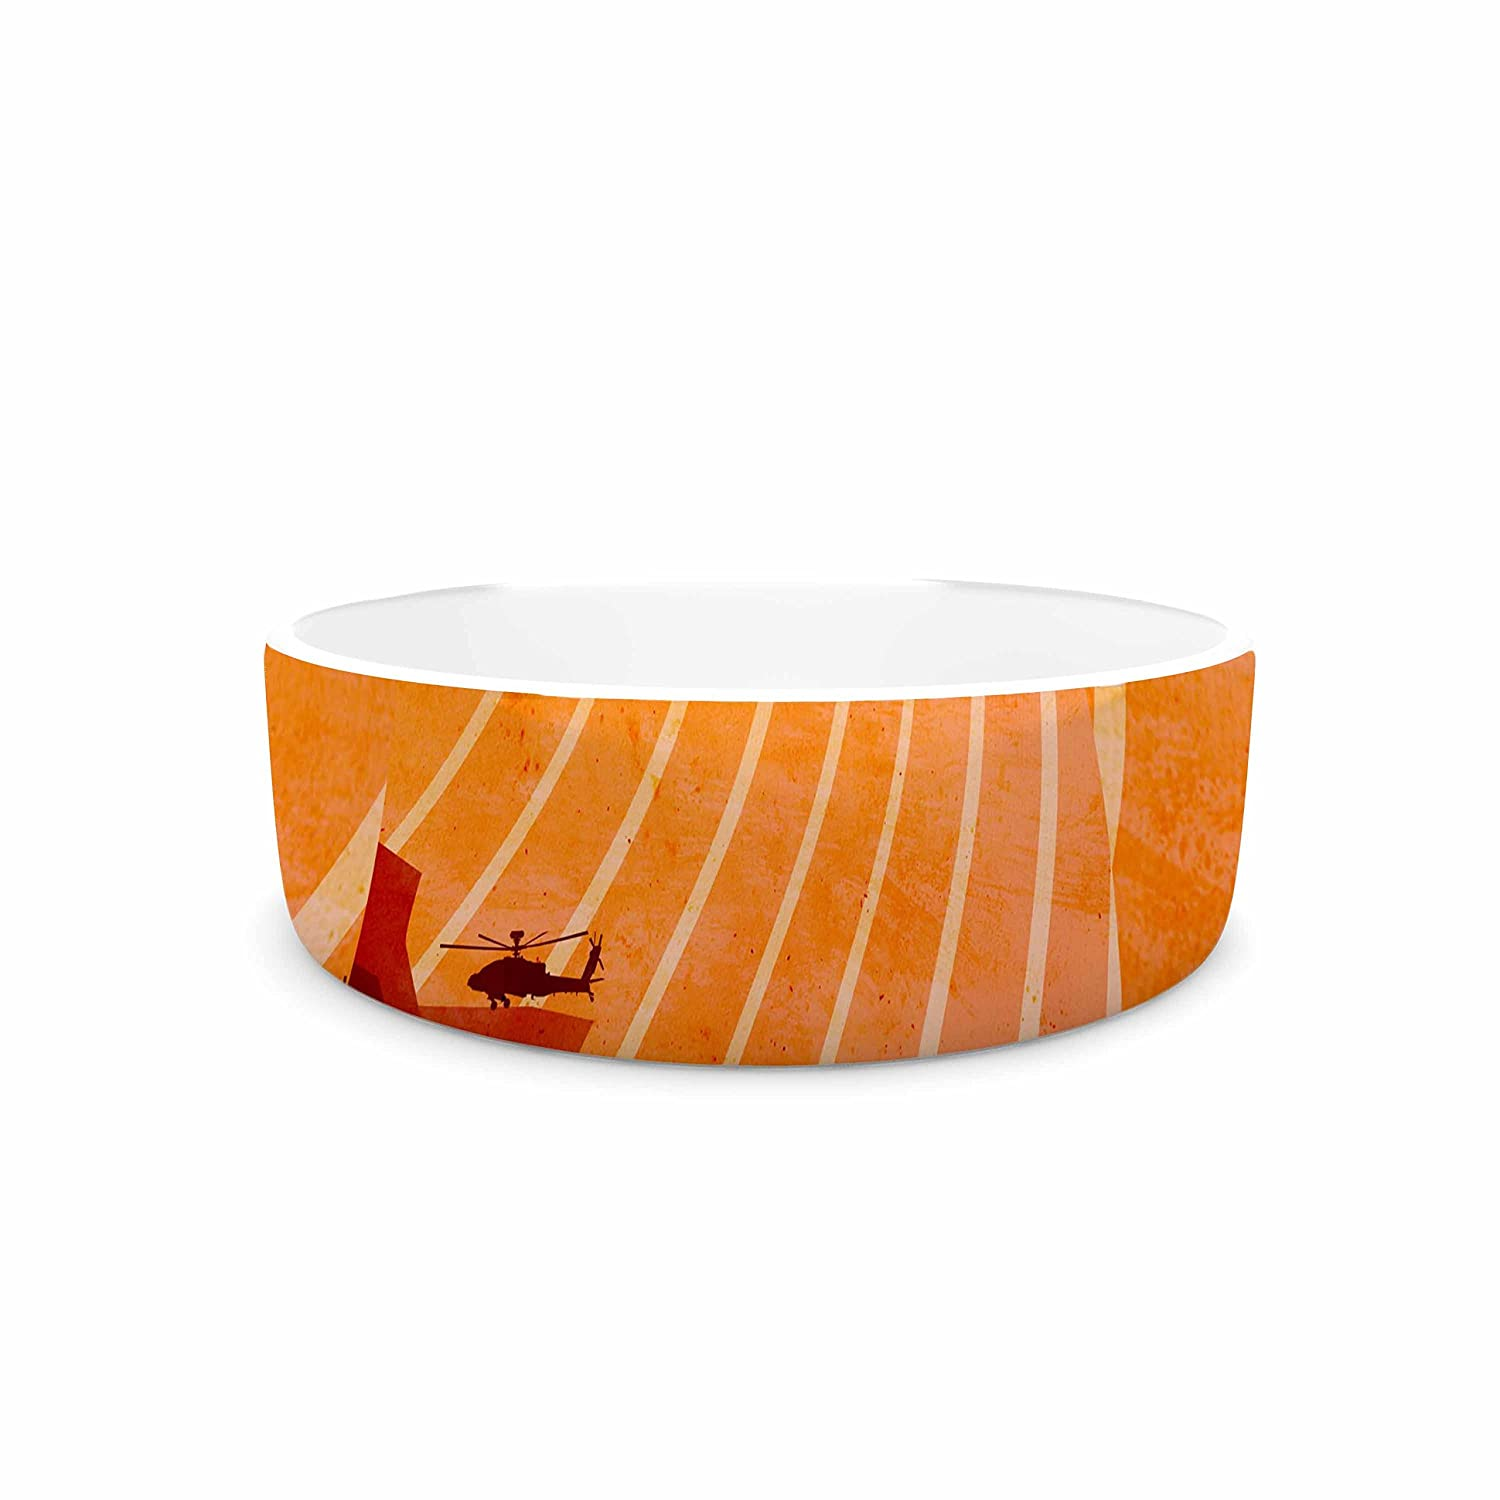 KESS InHouse BarmalisiRTB Landed Yellow orange Illustration Pet Bowl, 7  Diameter